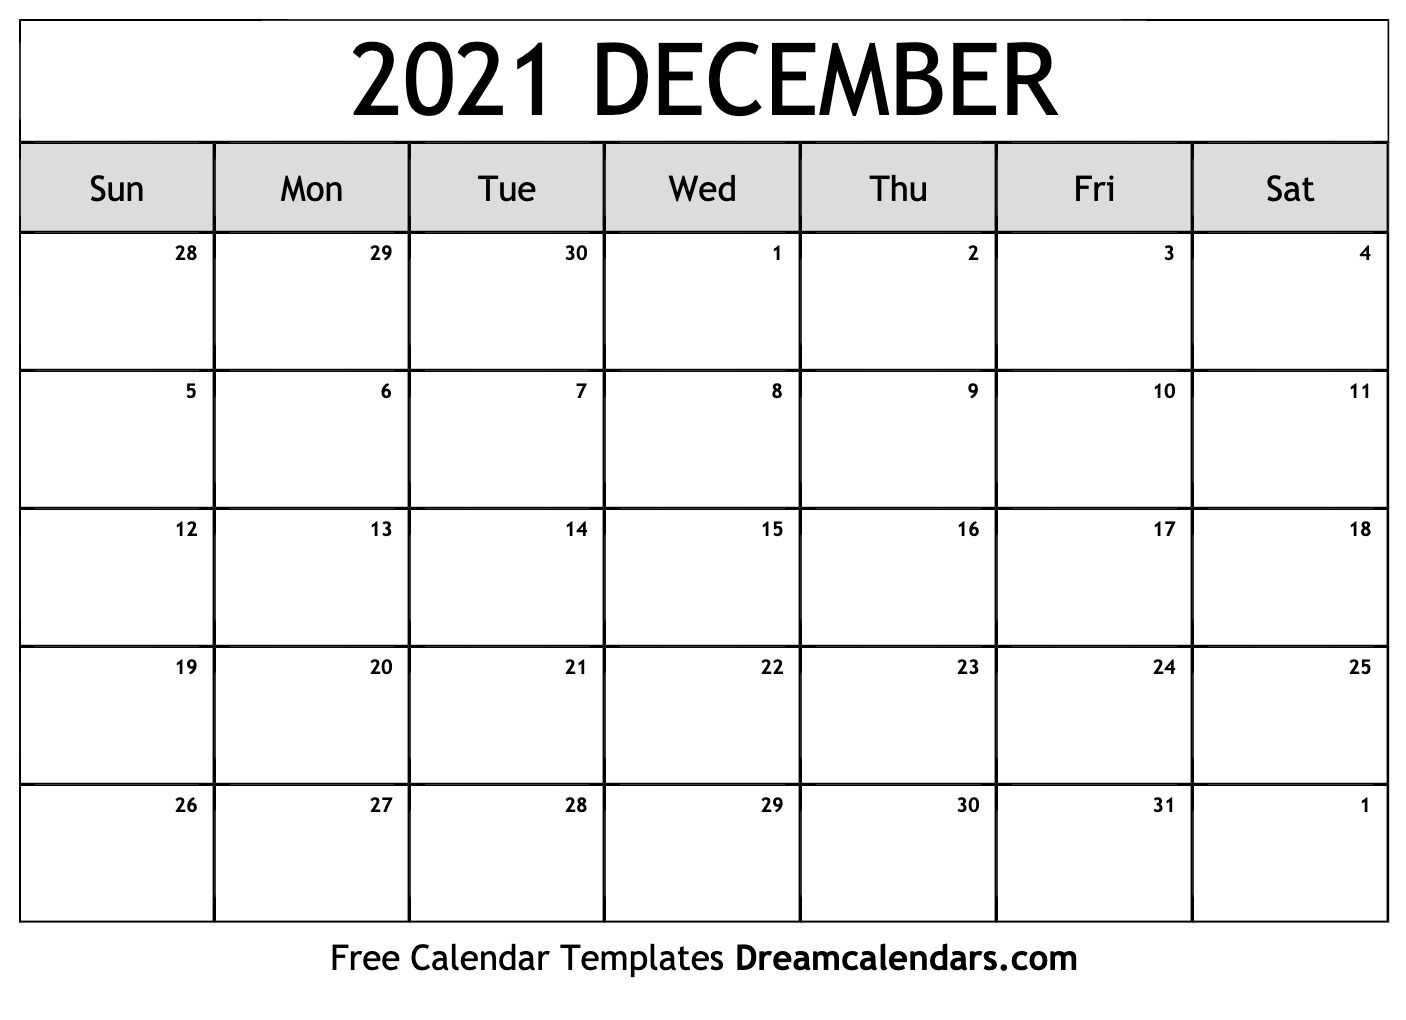 December 2021 Calendar View The Free Printable Monthly December 2021 Calendar And Print In O In 2020 Editable Calendar Calendar Printables Printable Calendar Template